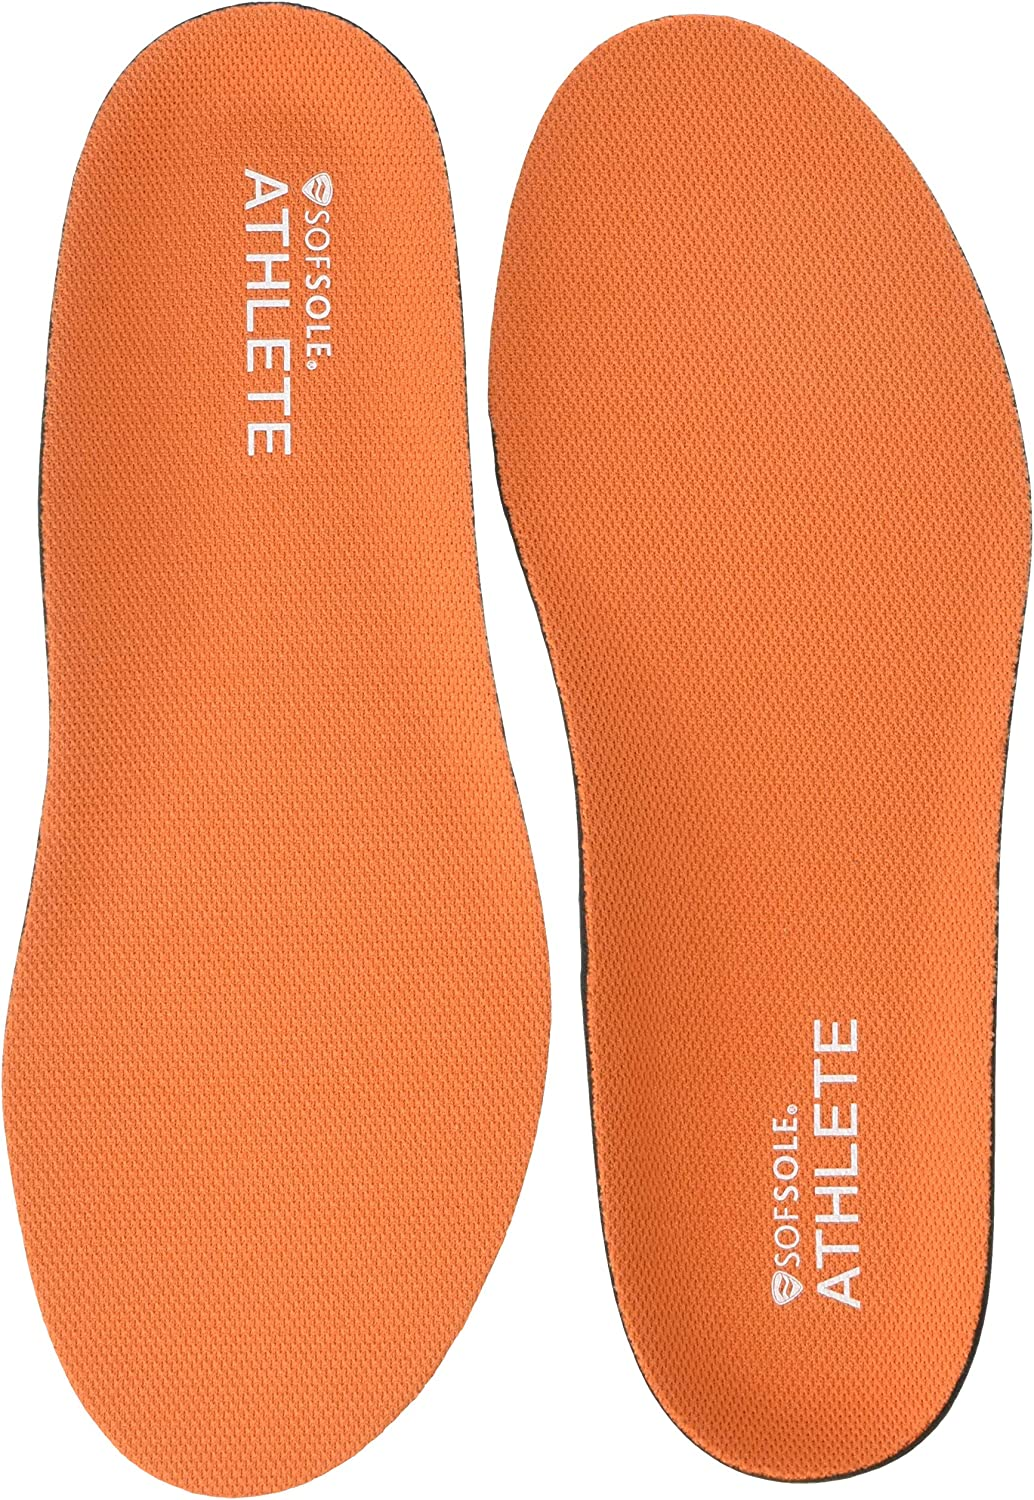 Sof Reservation Lowest price challenge Sole Insoles Women's ATHLETE Full-Length Performance Gel Sho